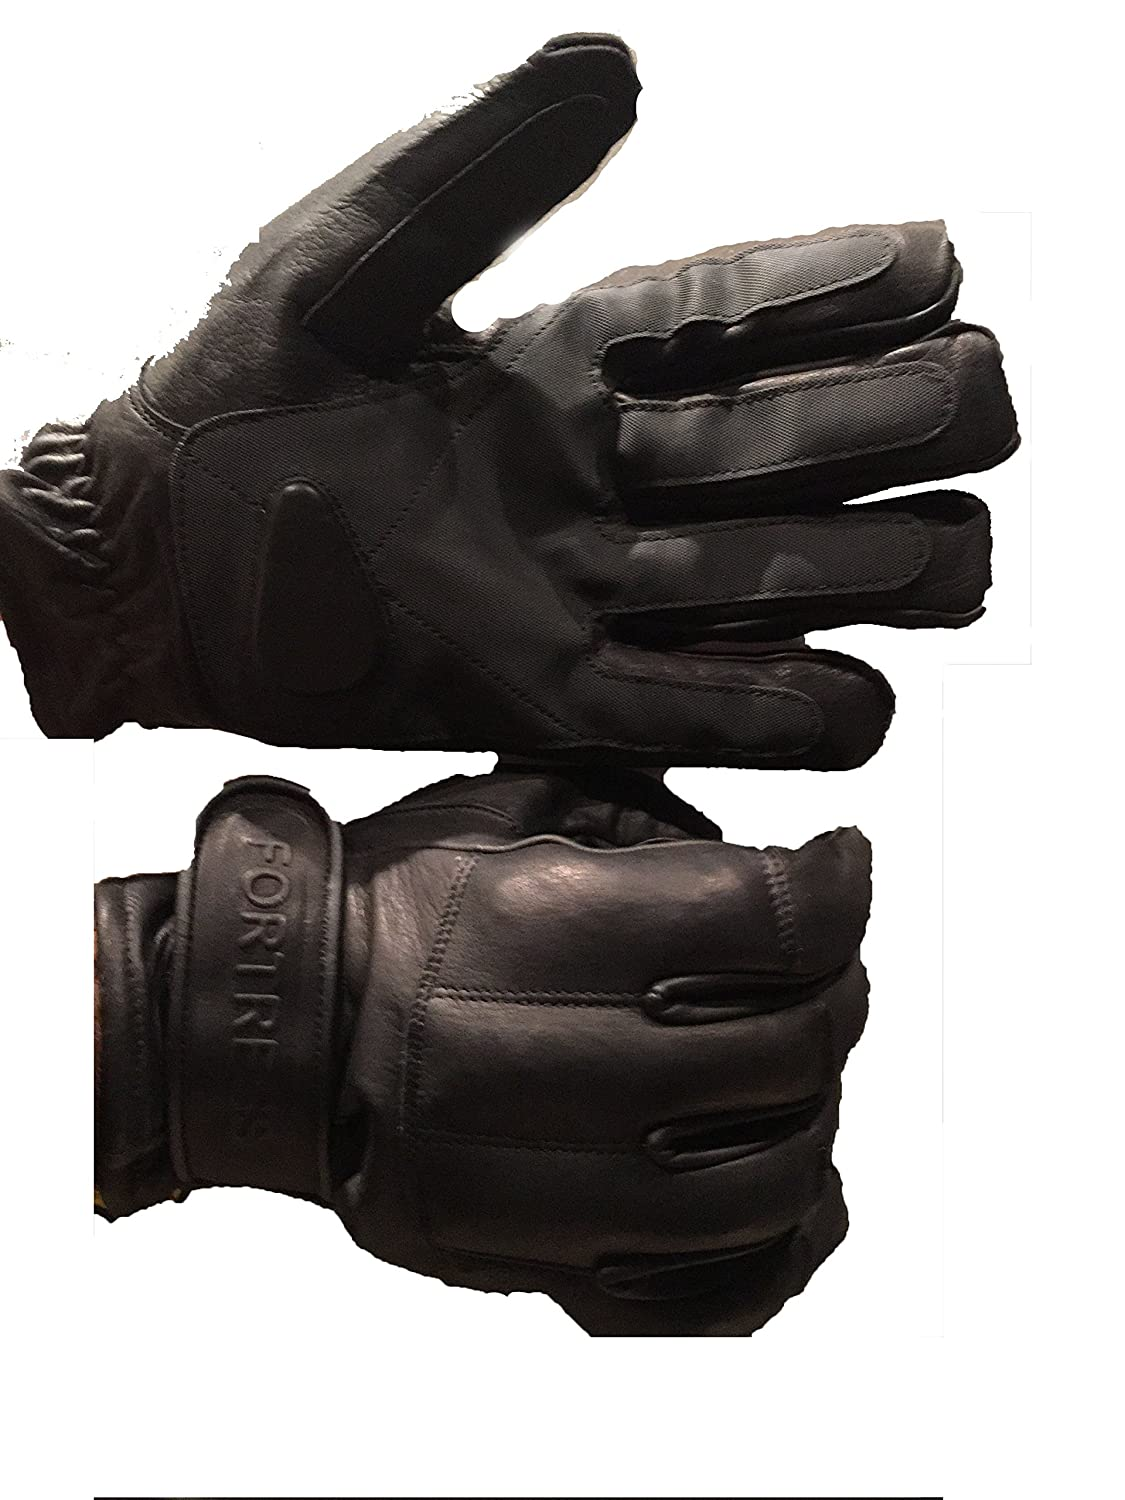 FORTRESS Pure Leather Lead /& Kevlar Flexible Gloves Doorman Professional Defend